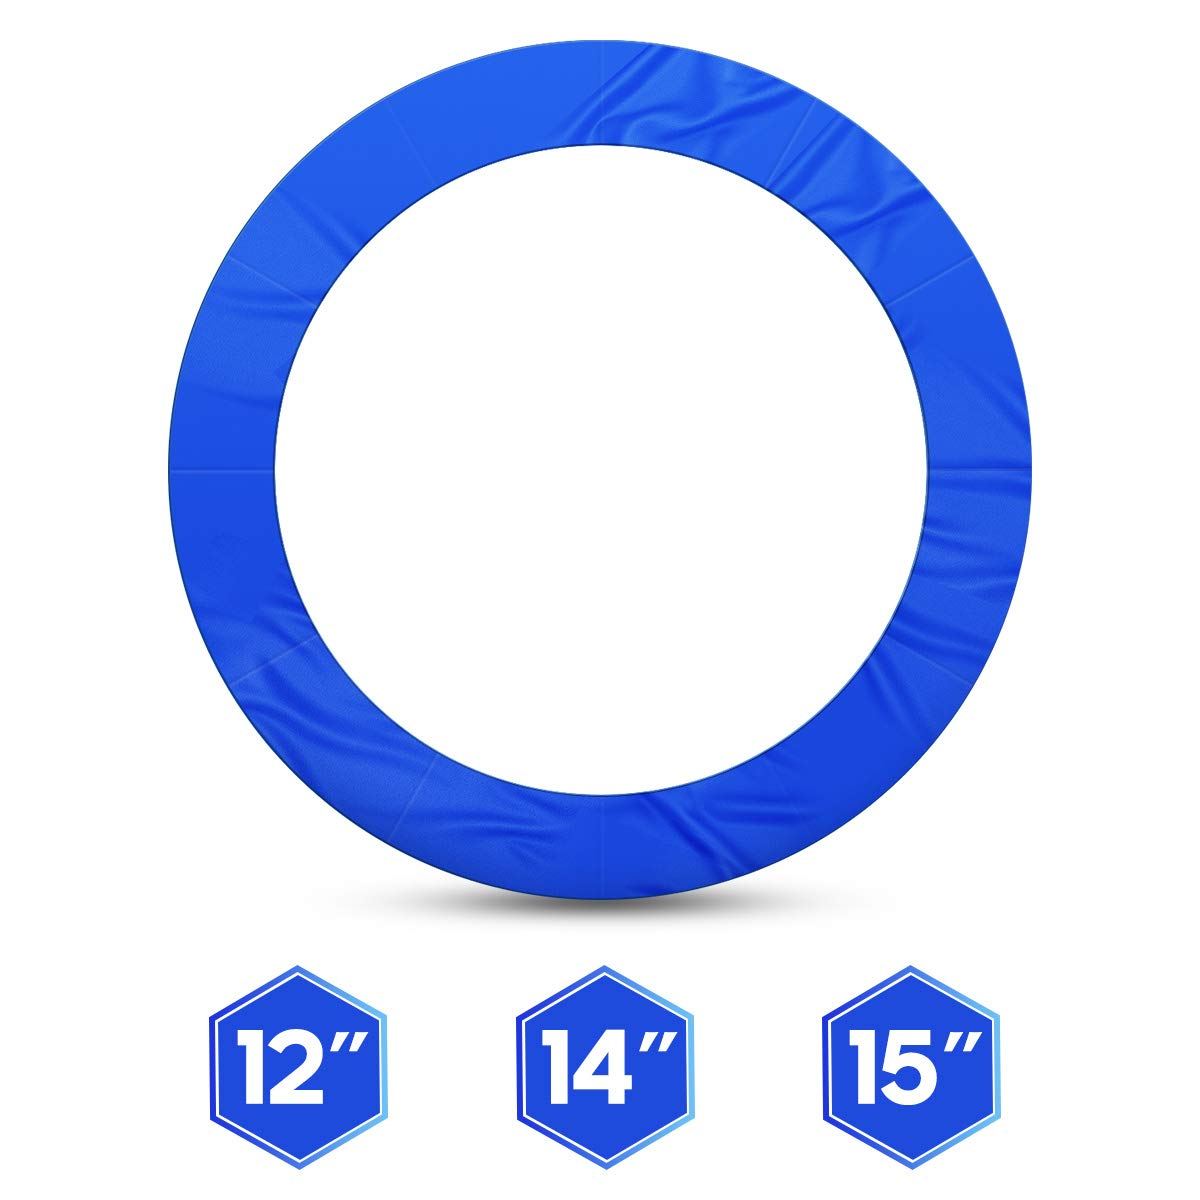 1INCH 12FT Trampoline Pad Blue Jumpking Trampoline Pad Replacement Safety Pad PVC Foam Waterproof Round Spring Cover (Blue, 12 FT)